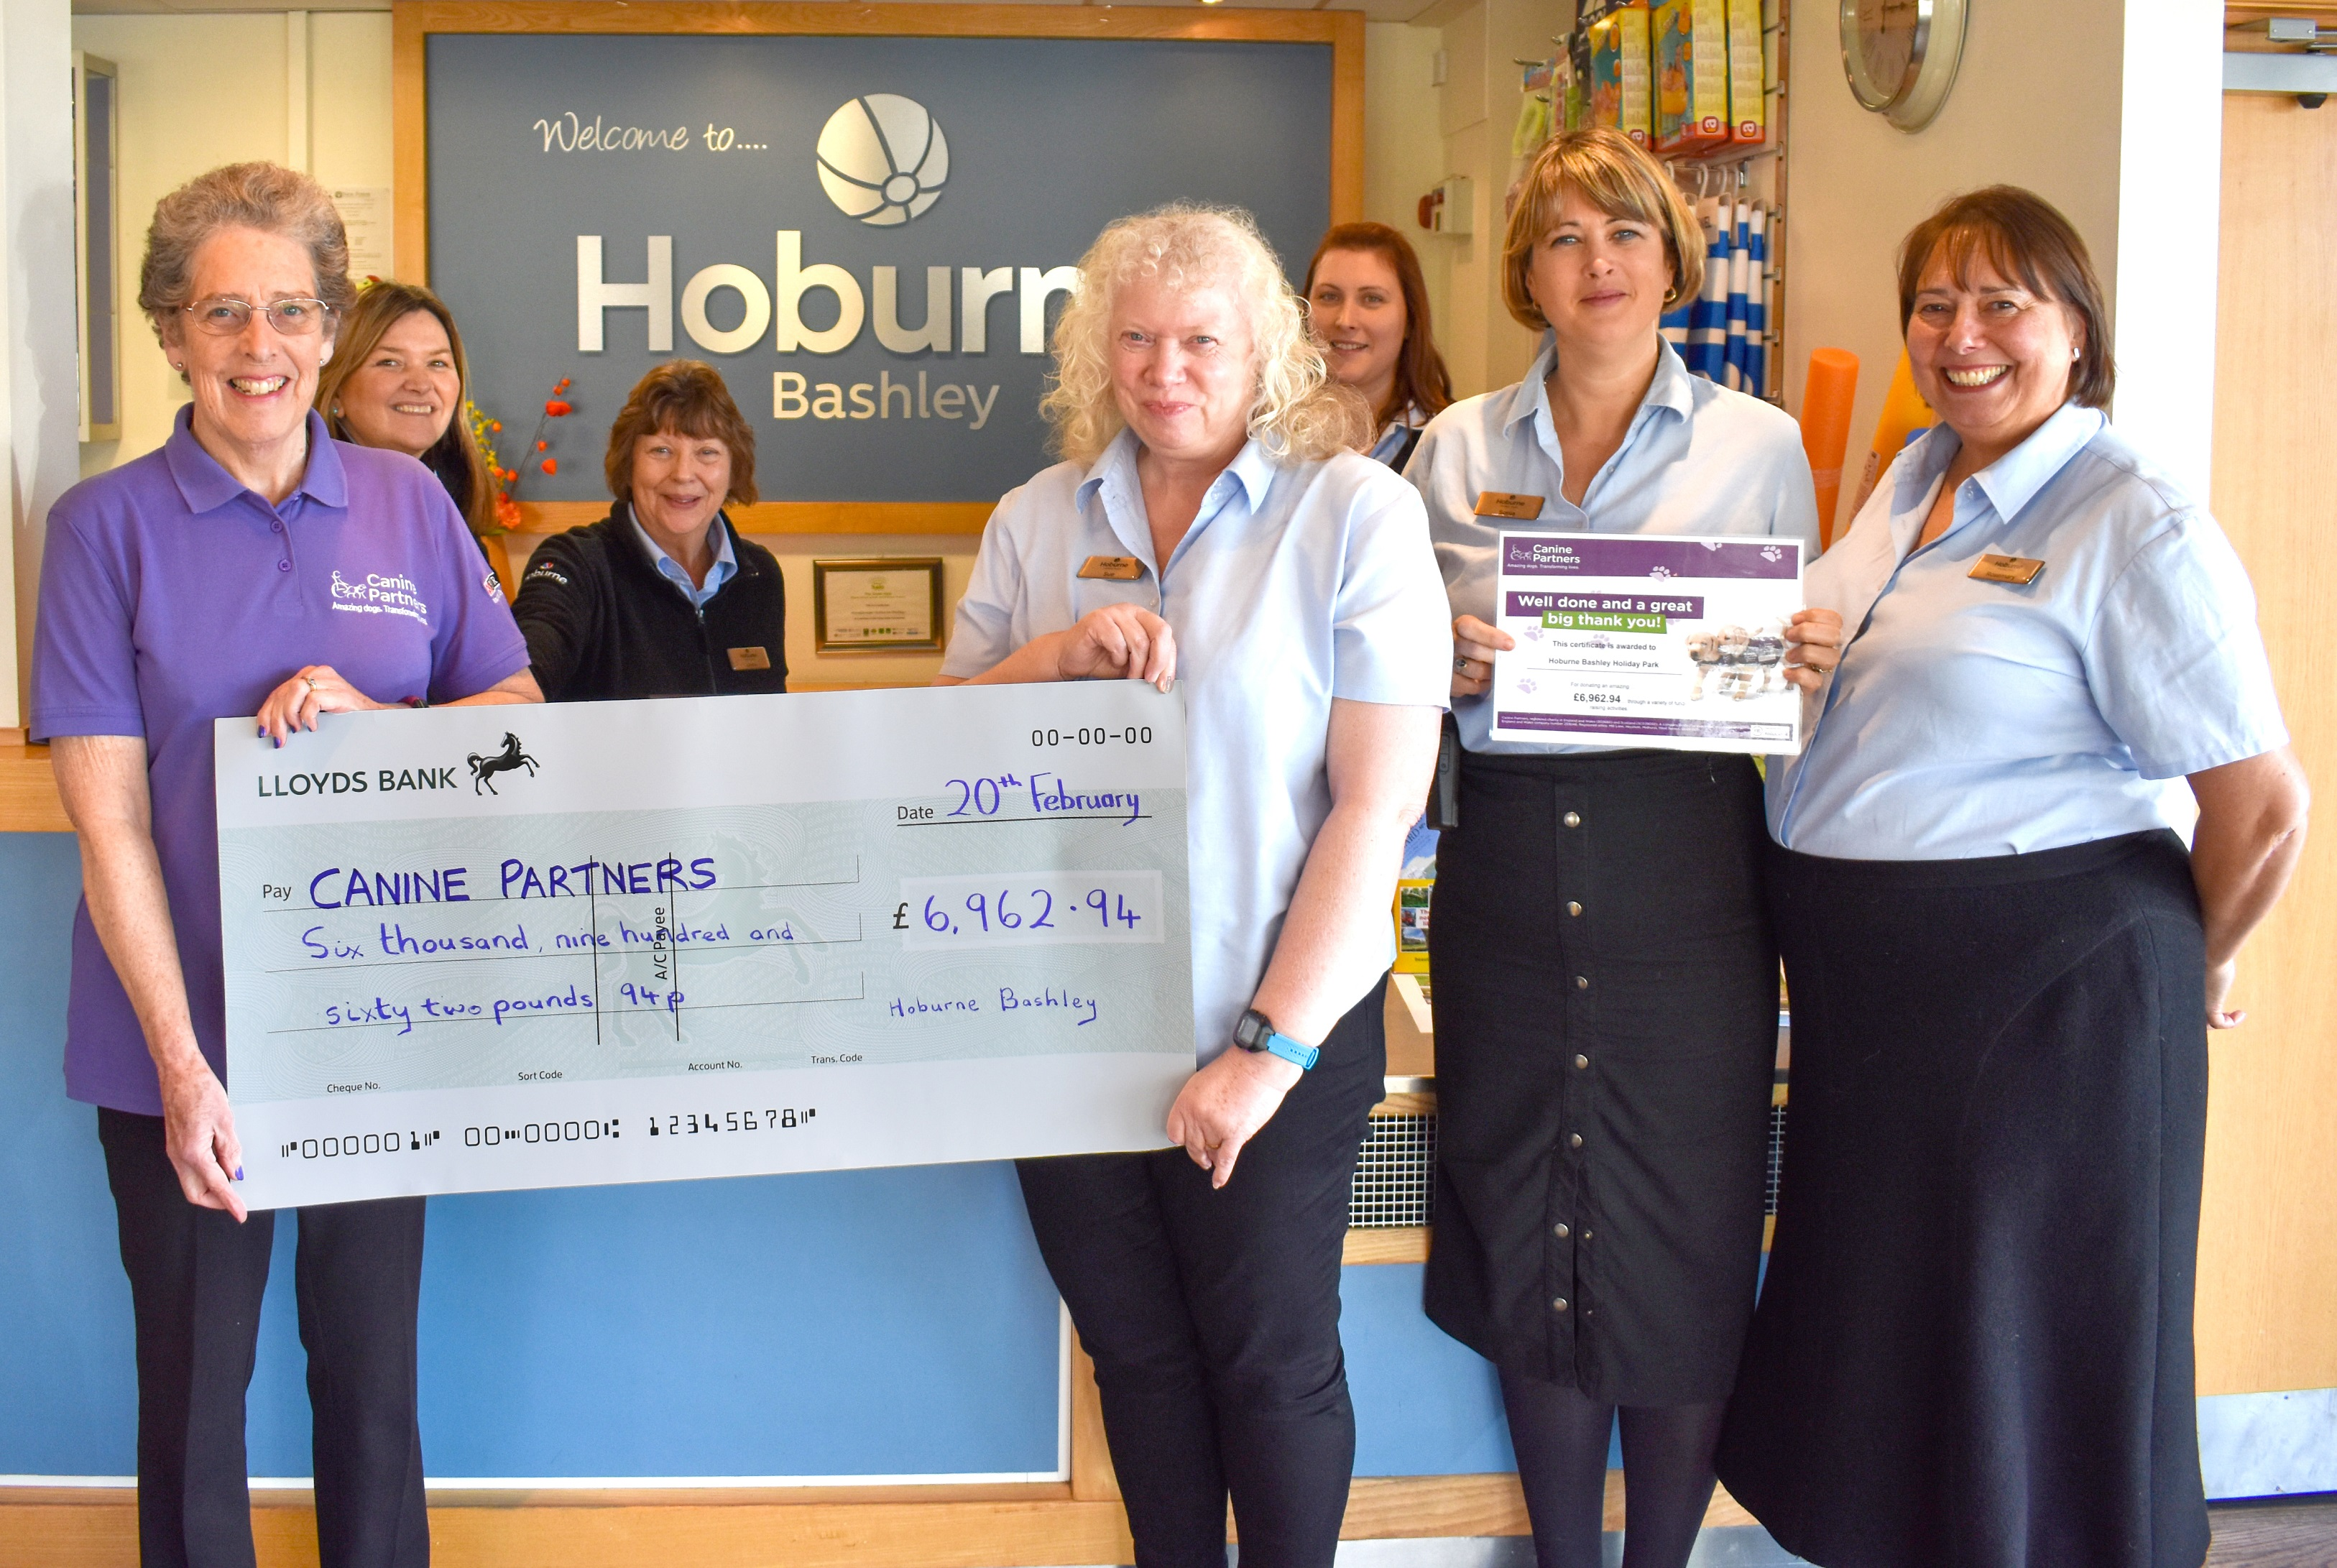 Paws up for Hoburne Bashley as the park raises thousands for Canine Partners